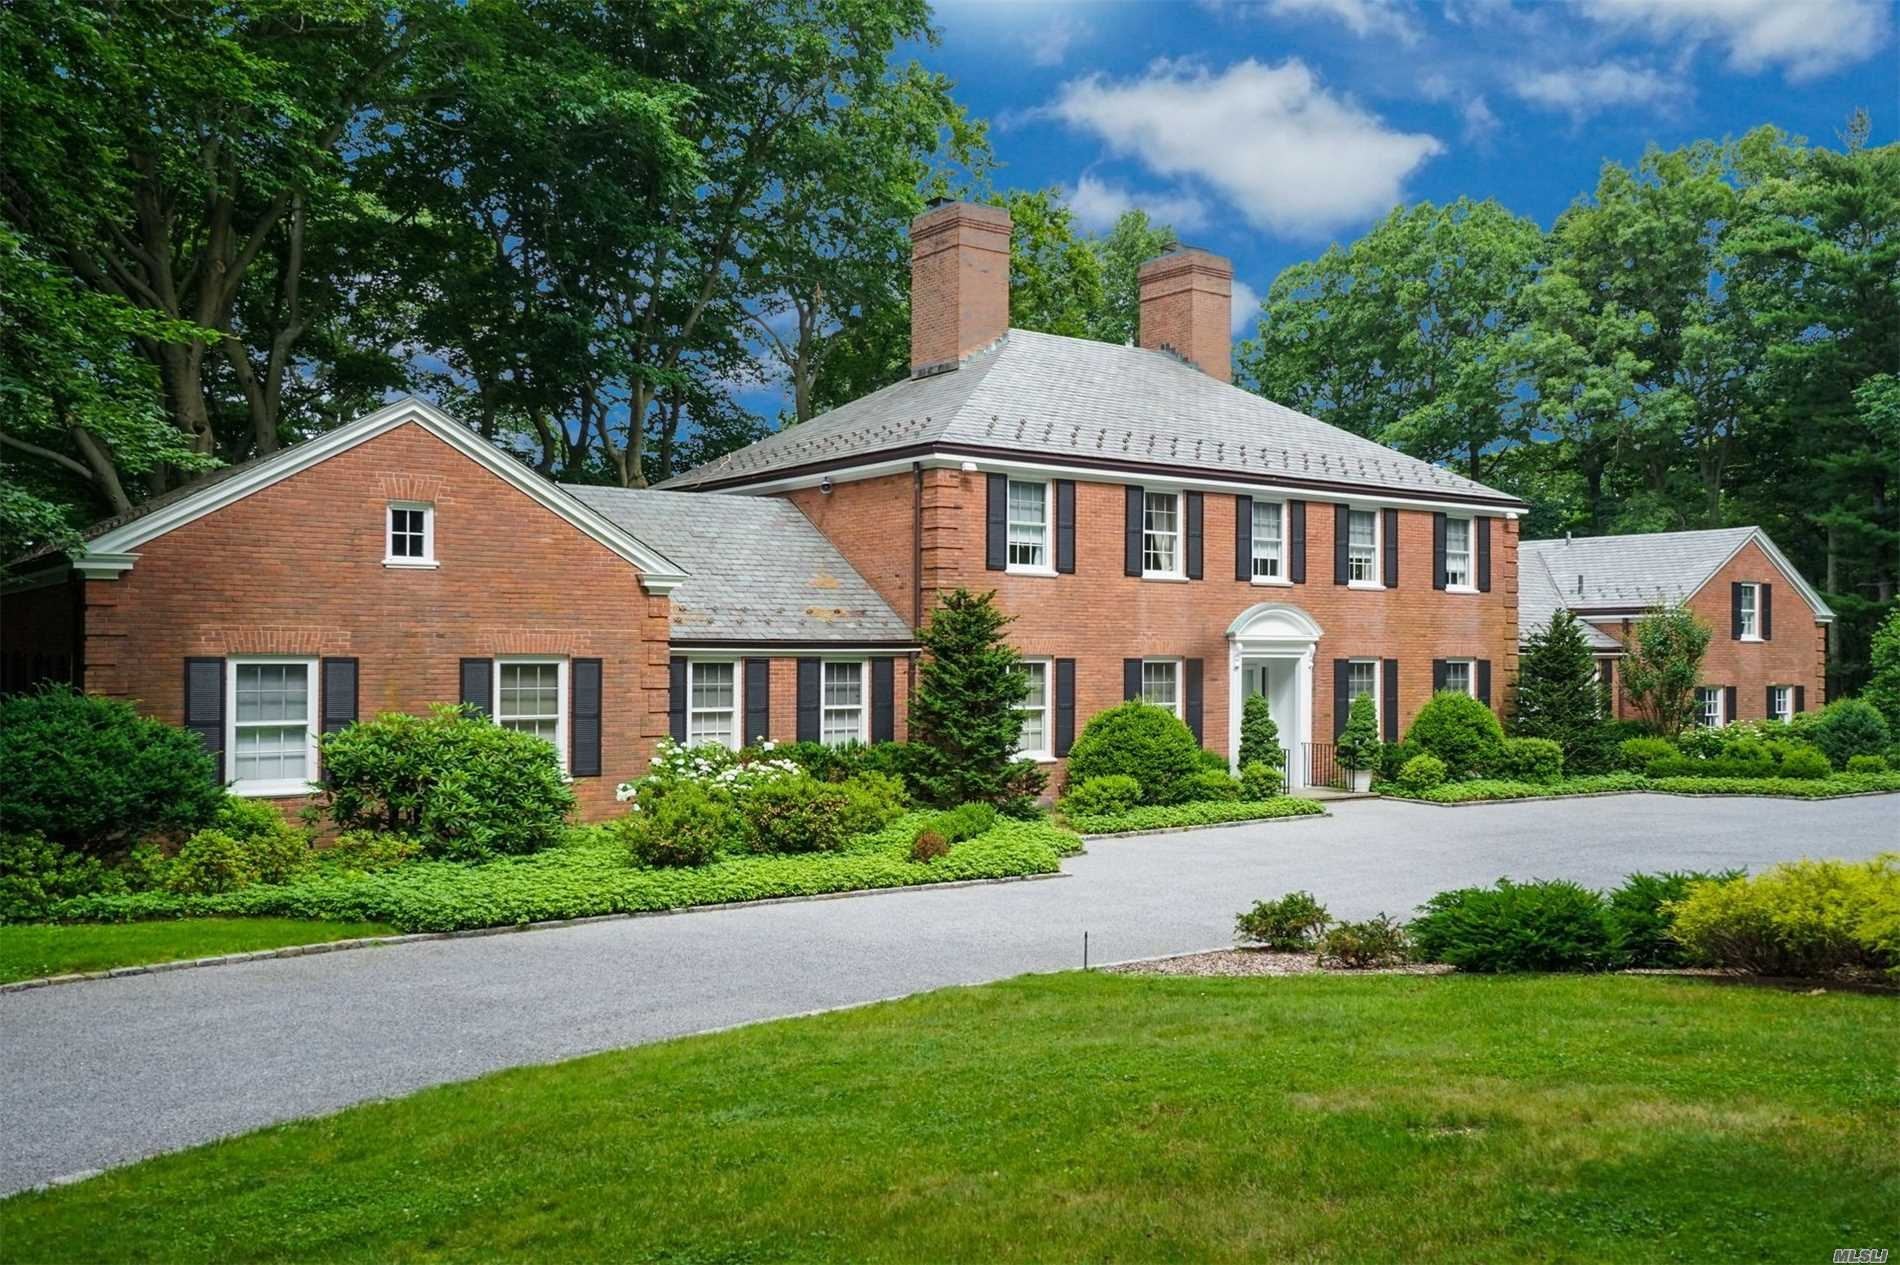 Traditional Custom Built 1968 Brick Manor Home Tucked Away On 5 Tranquil Mill Neck Acres With Pool. Long Driveway Leads To A 7 Bedroom House With Large Formal Entertaining Rooms Overlooking Spacious Patio. Cozy Paneled Library With Fireplace. First Floor Master Bedroom Suite. Attached 3 Car Garage Plus A 2 Car Detached Garage, Central Vac And Whole House Generator.